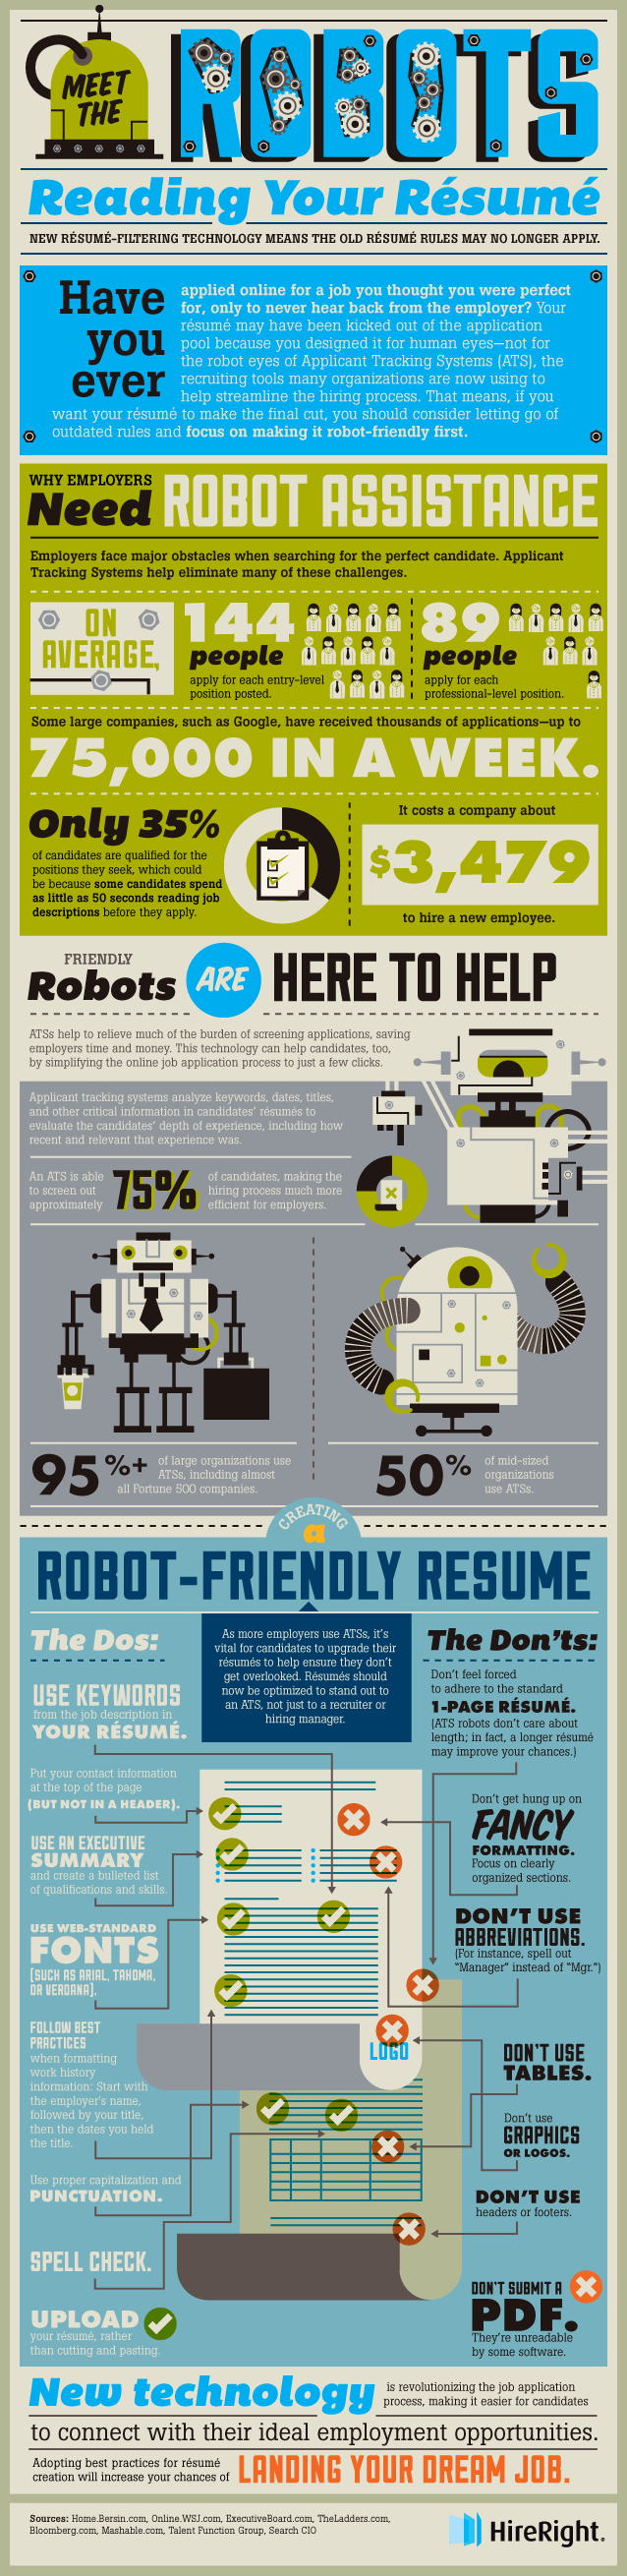 how to impress the robot that s reading your resume infographic